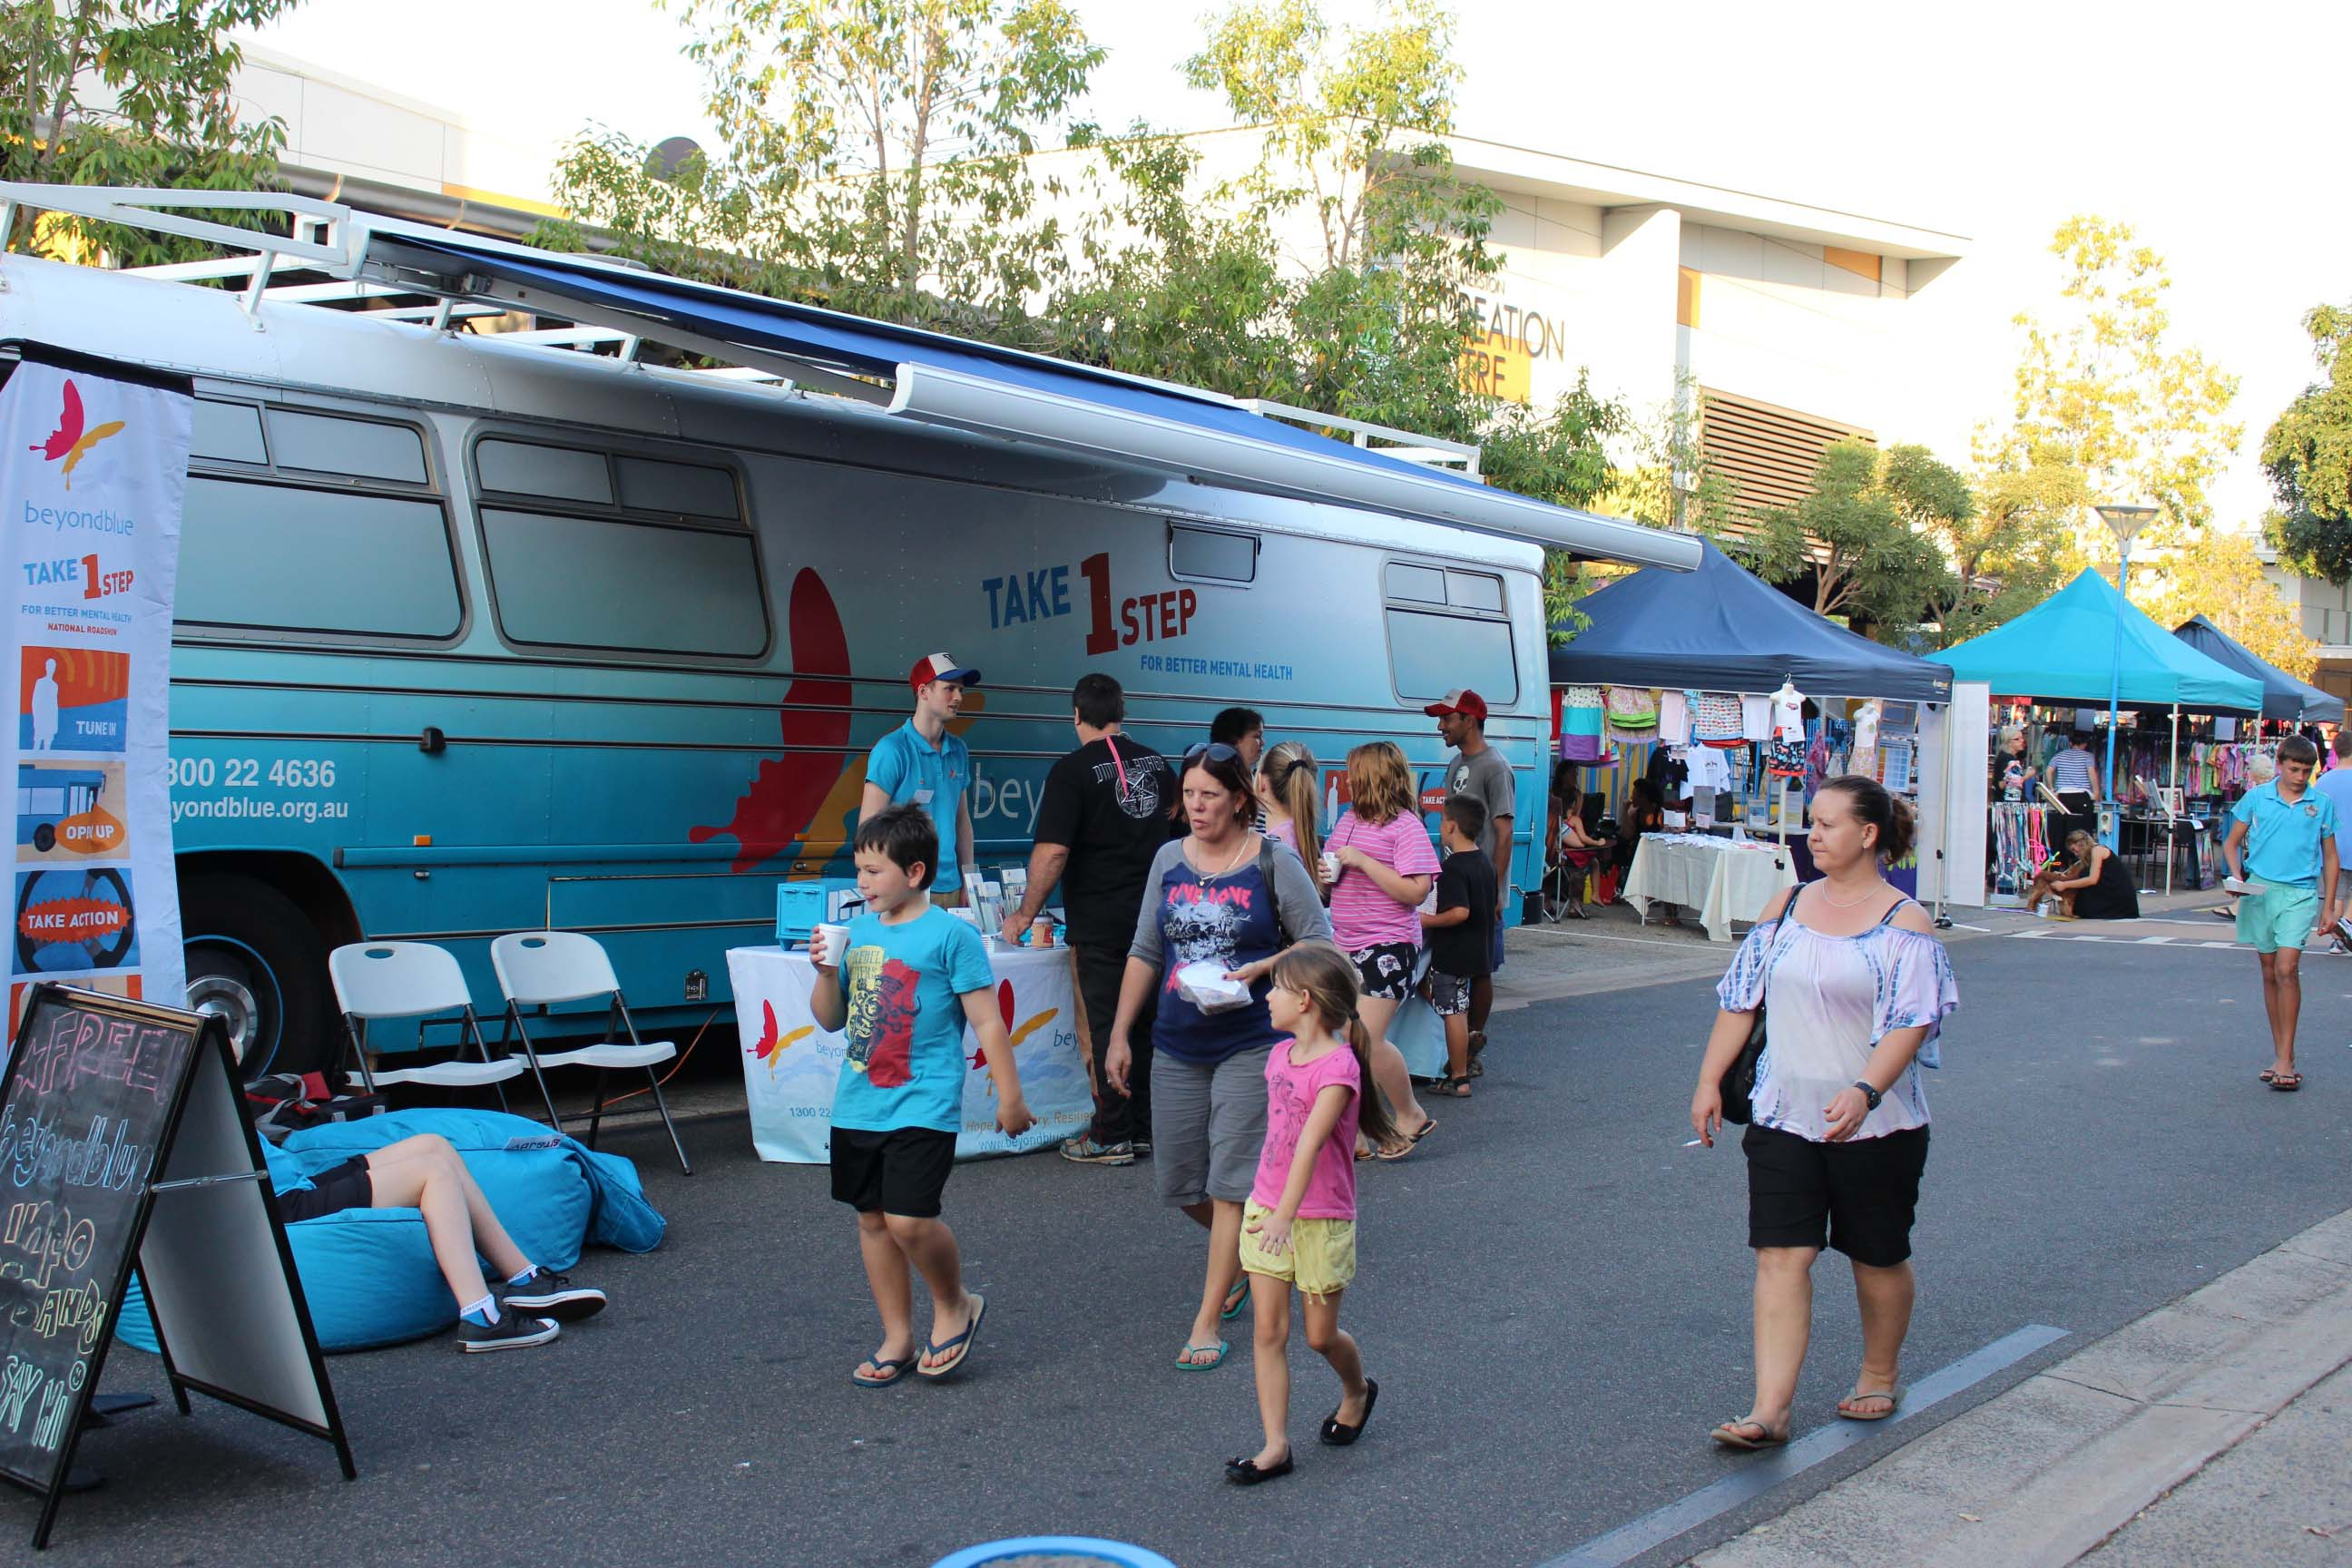 The bus set up at the Palmerston Markets.